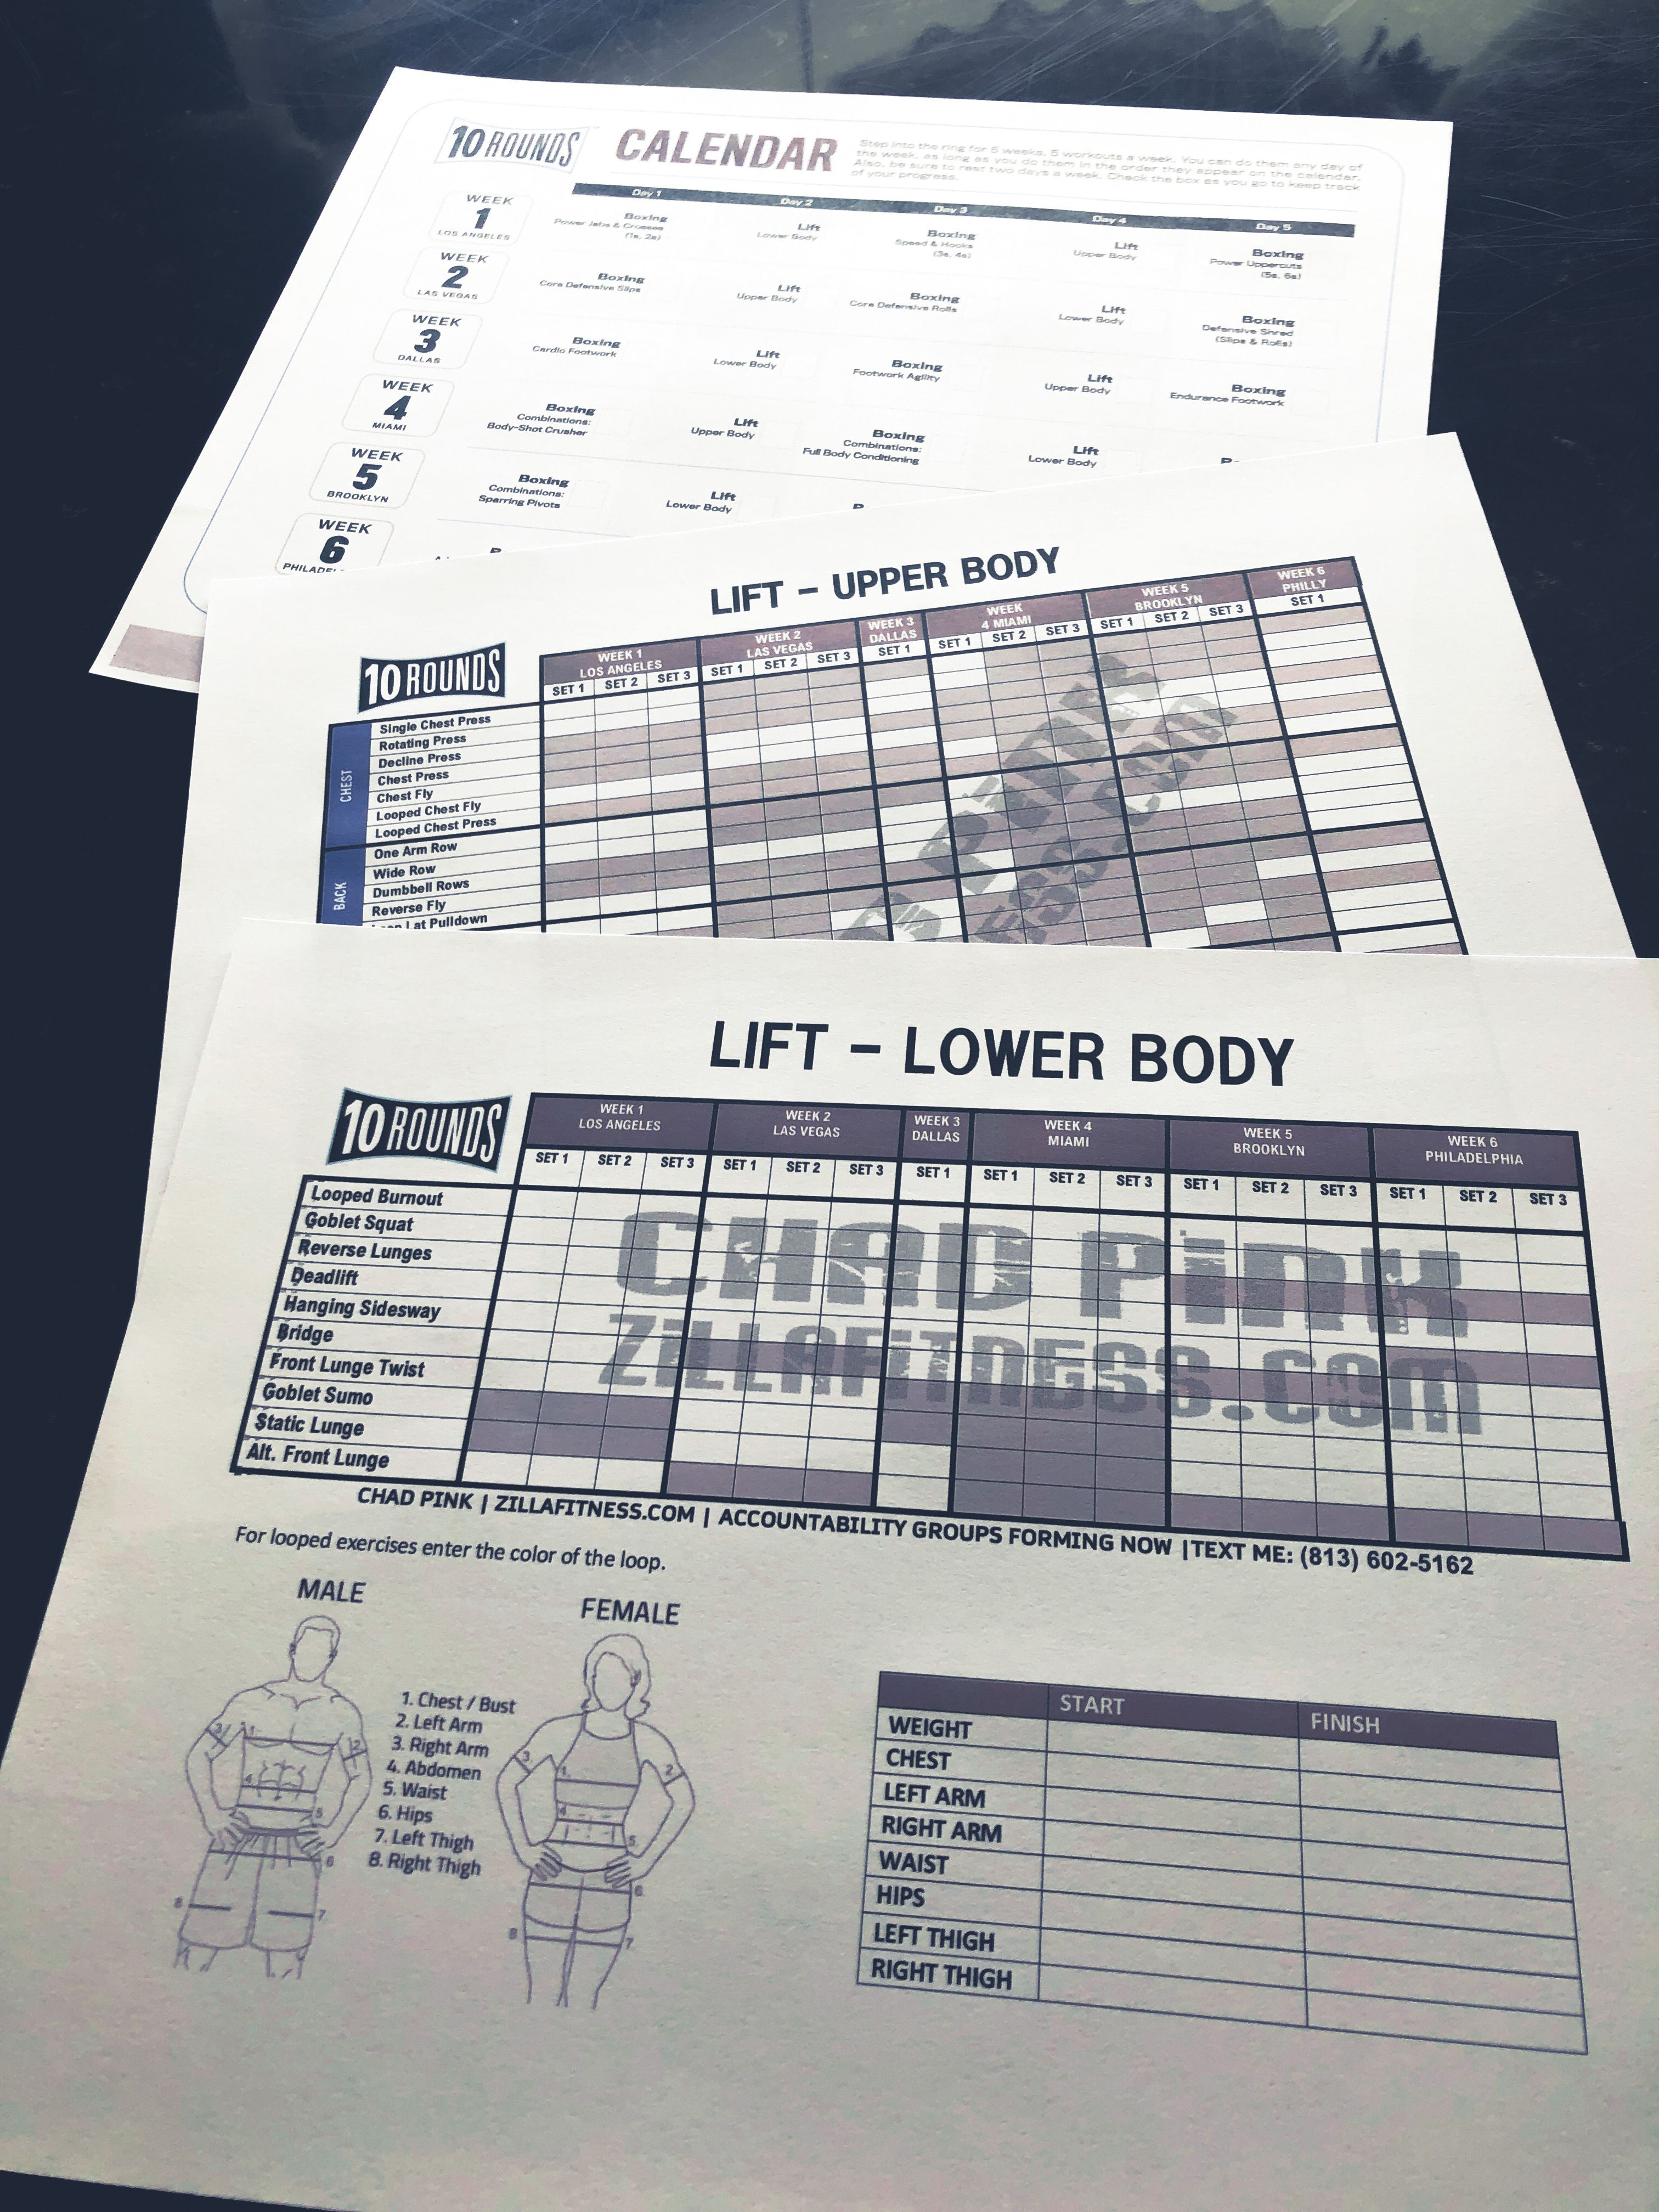 Pin On Beachbody Worksheets And Schedules